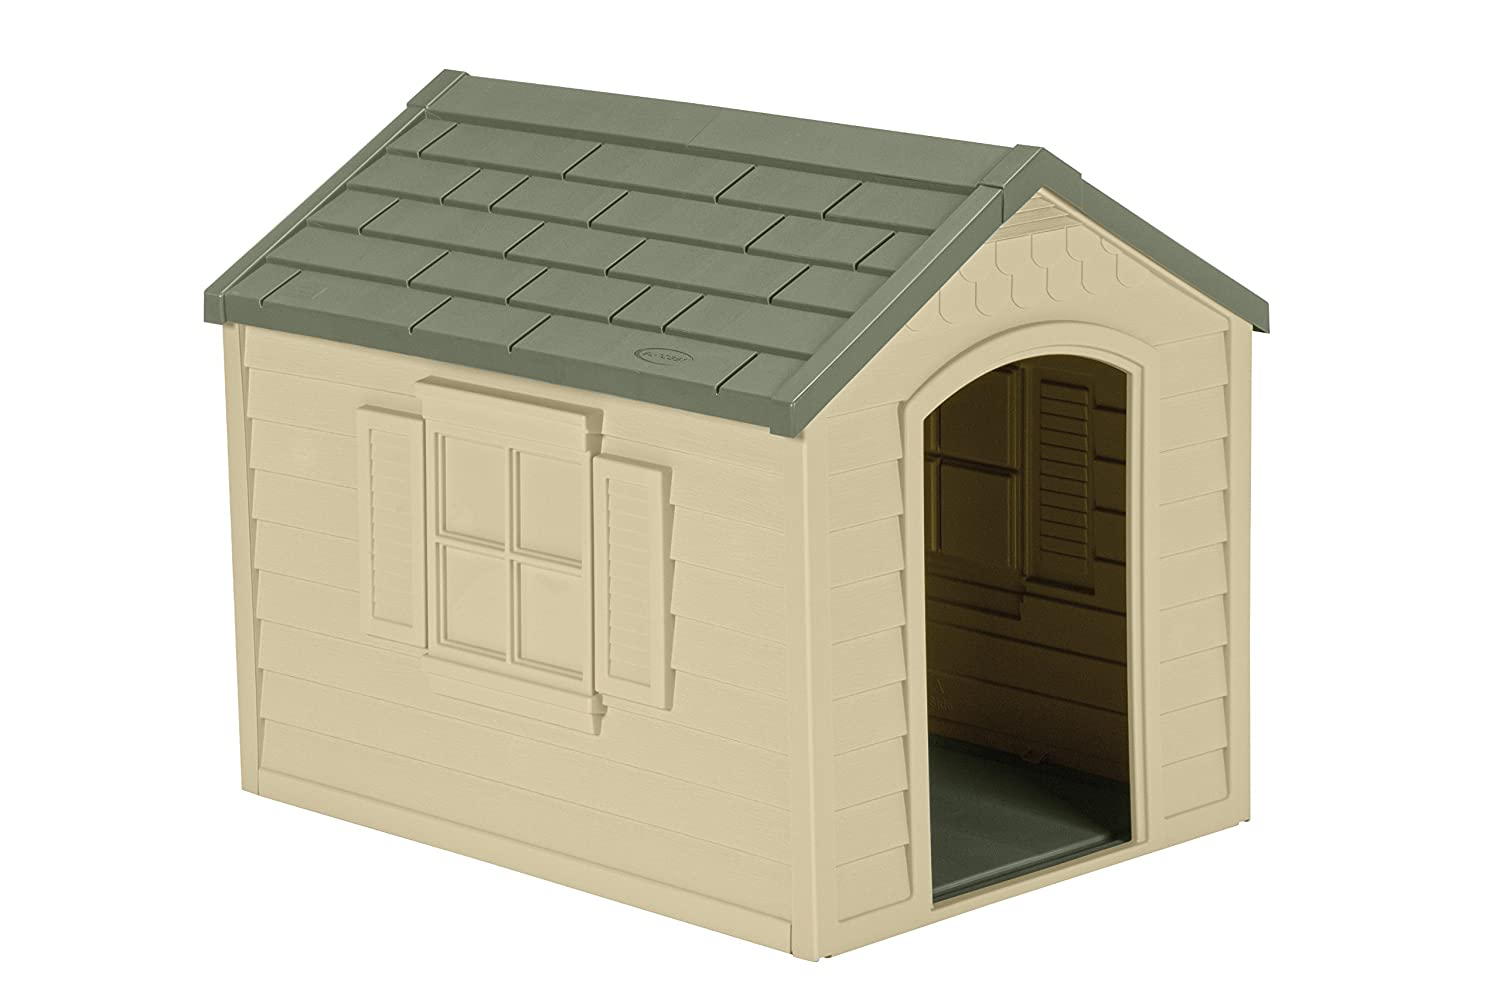 Amazon.com : Suncast DH250 Dog House : Pet Supplies